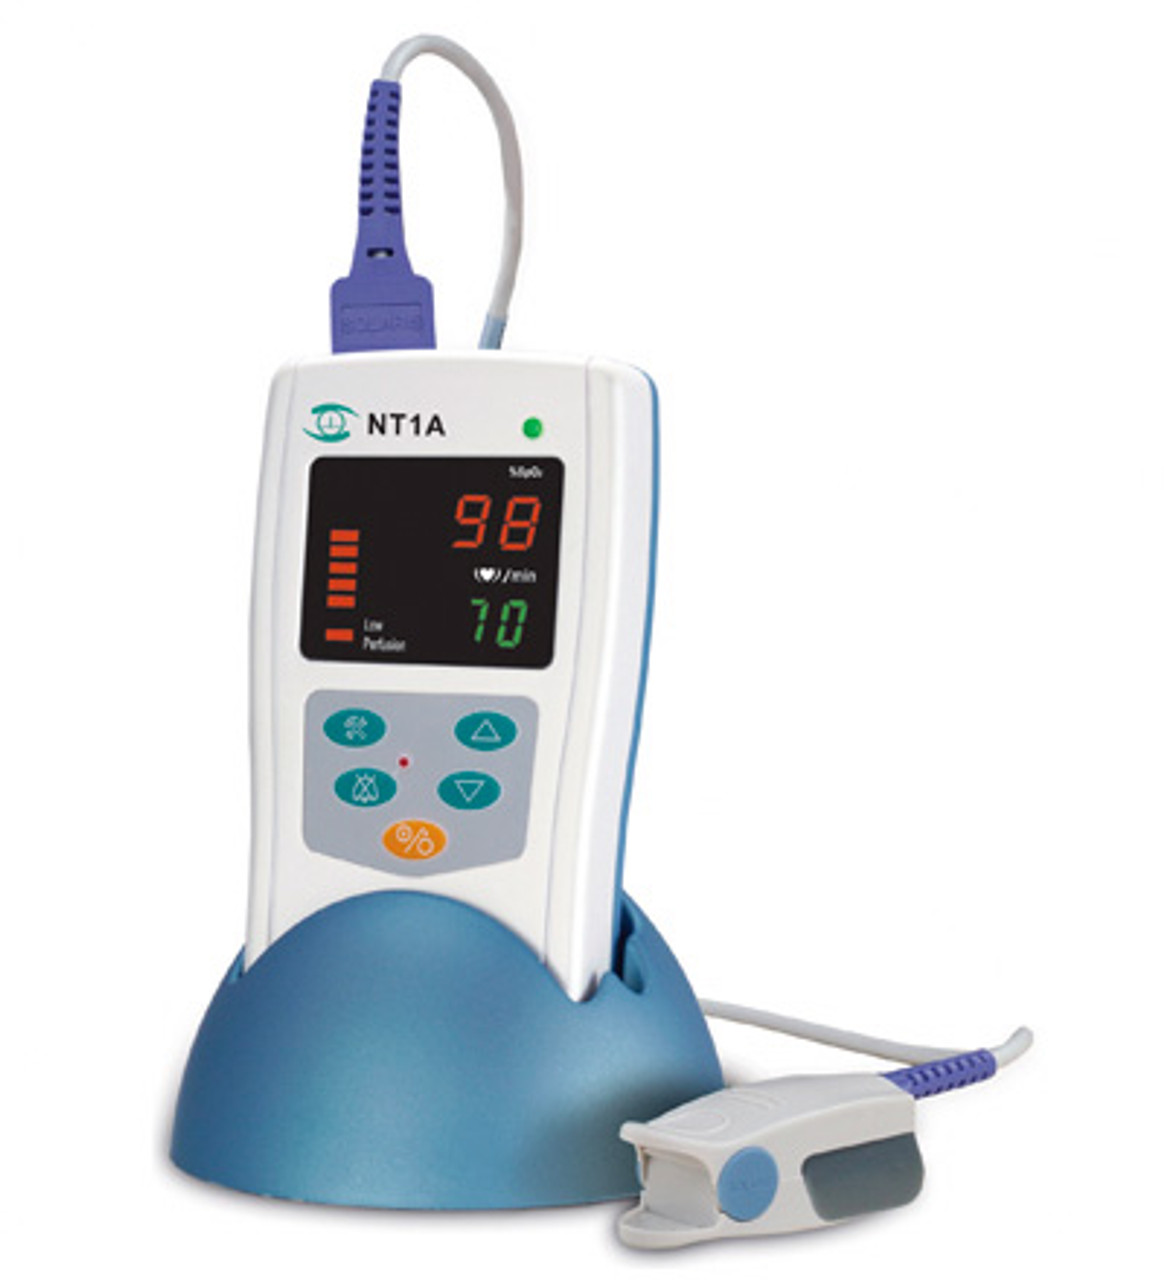 Solaris Medical Technology NT1A Handheld Pulse Oximeter with Alarm